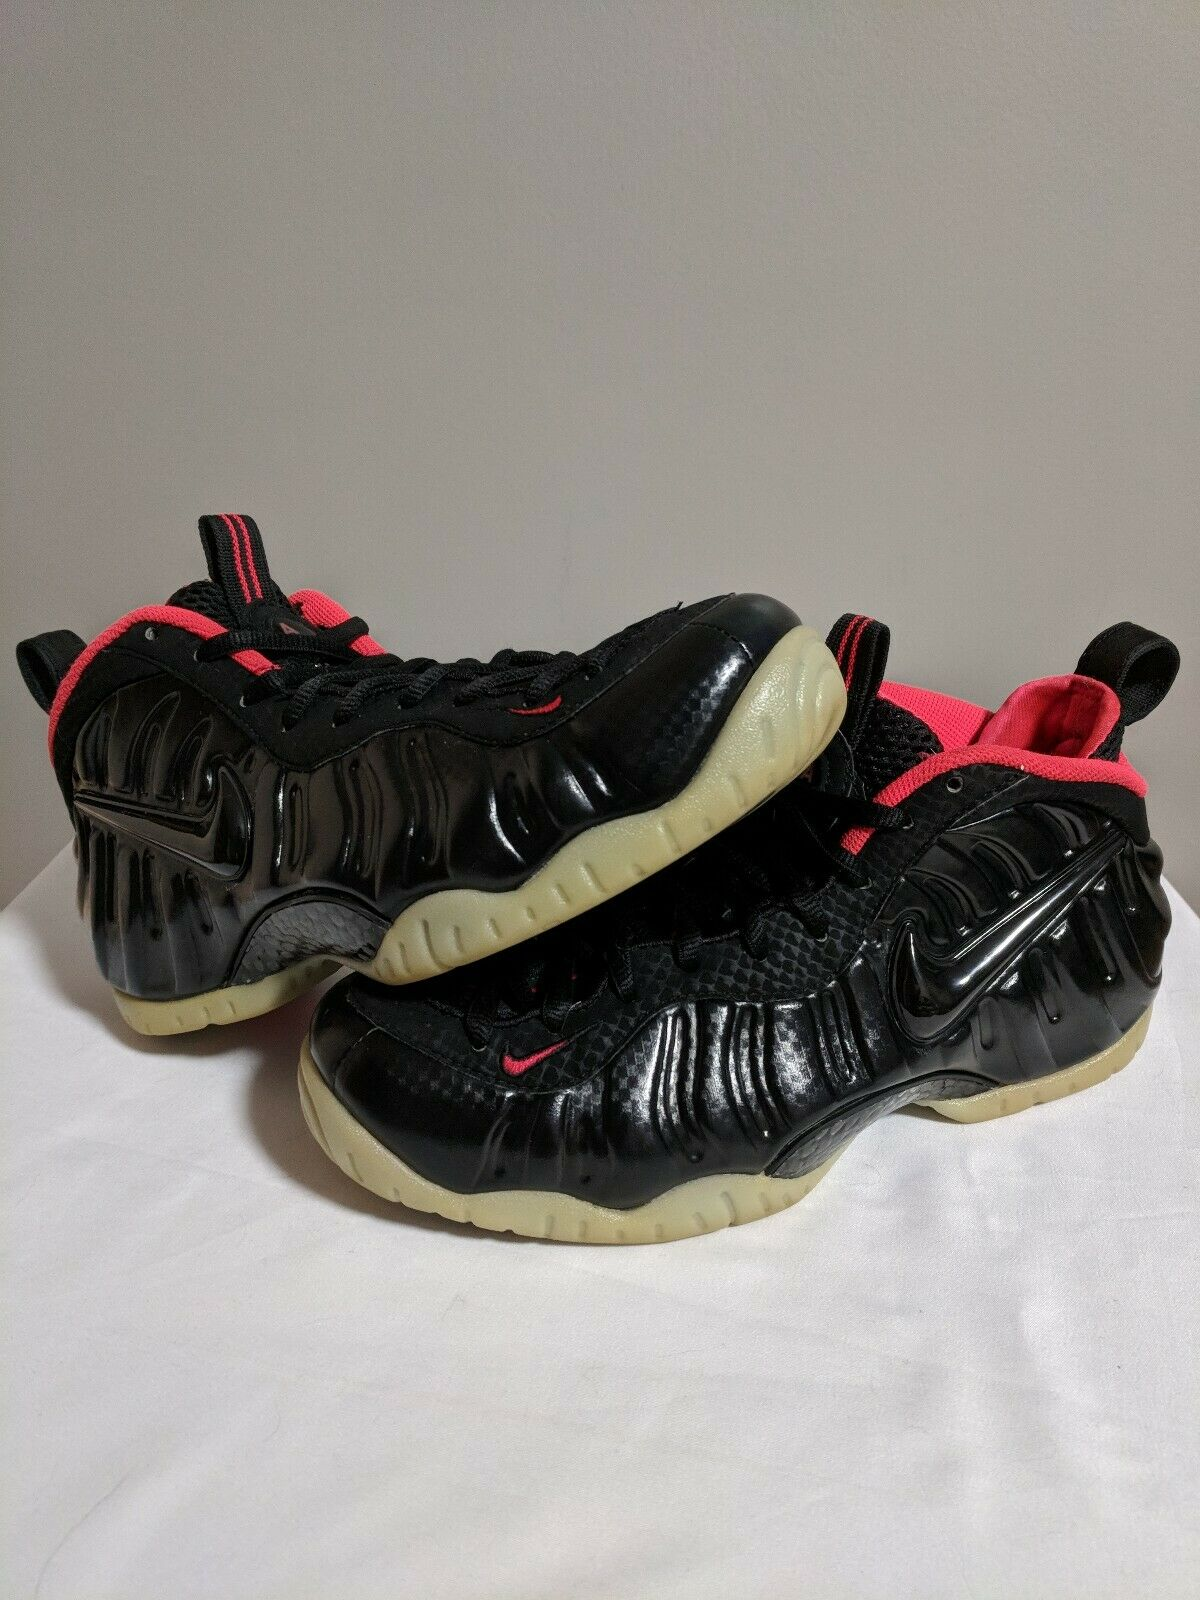 ac43c05042 Nike Air Pro Premium Sz 8.5 Mens solar glow pink black green Yeezy  Foamposite nrkqhl1930-Athletic Shoes